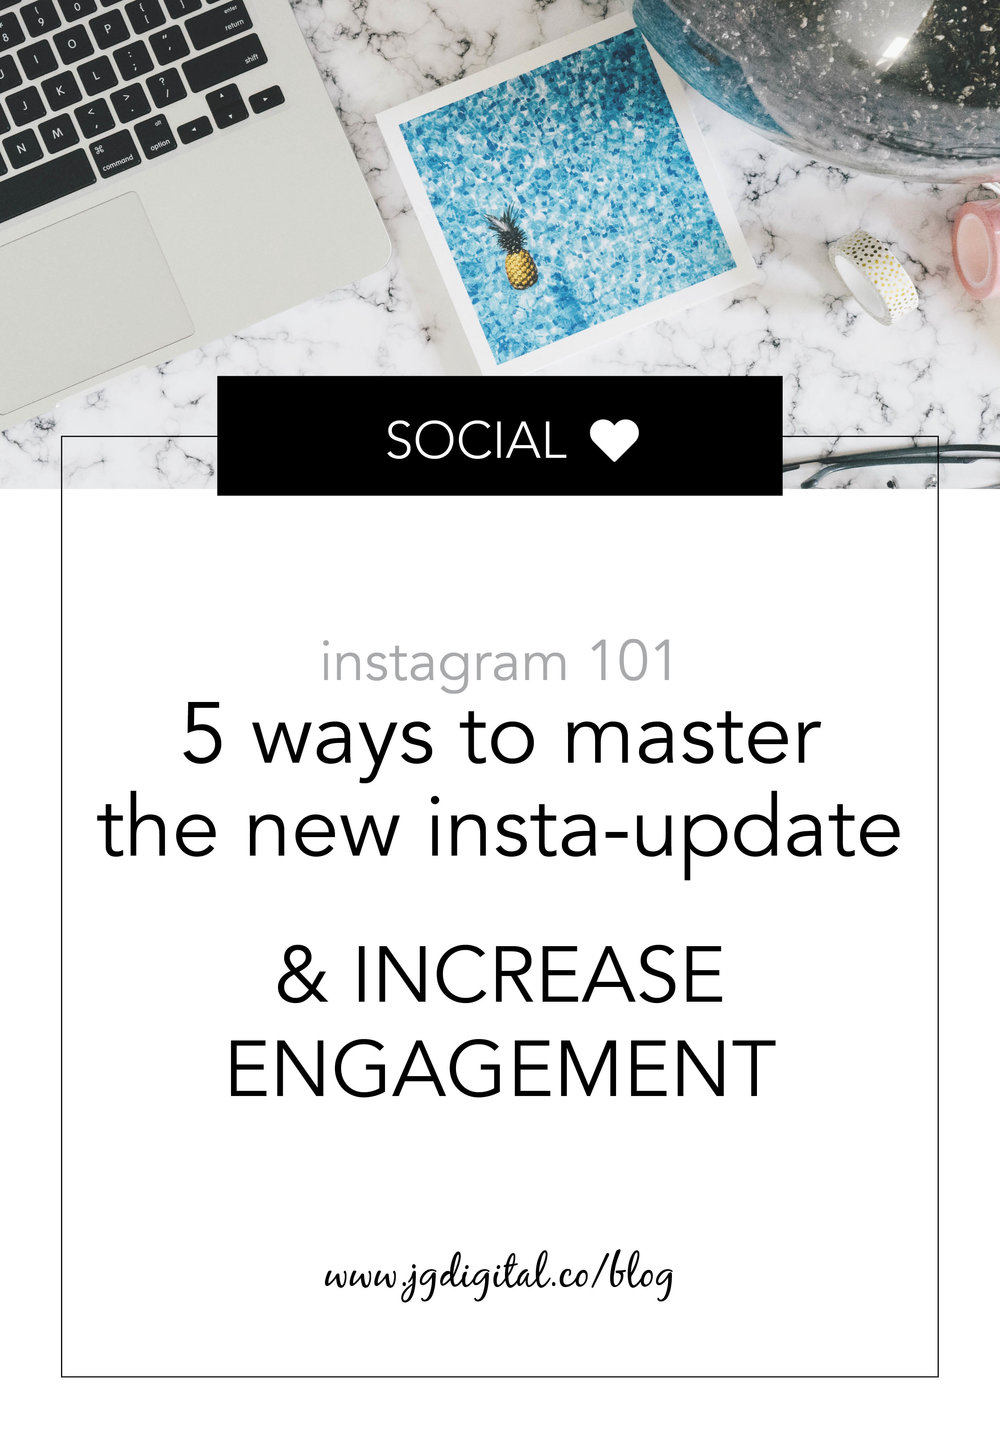 Blog - 5 Ways to Master the New Instagram Update